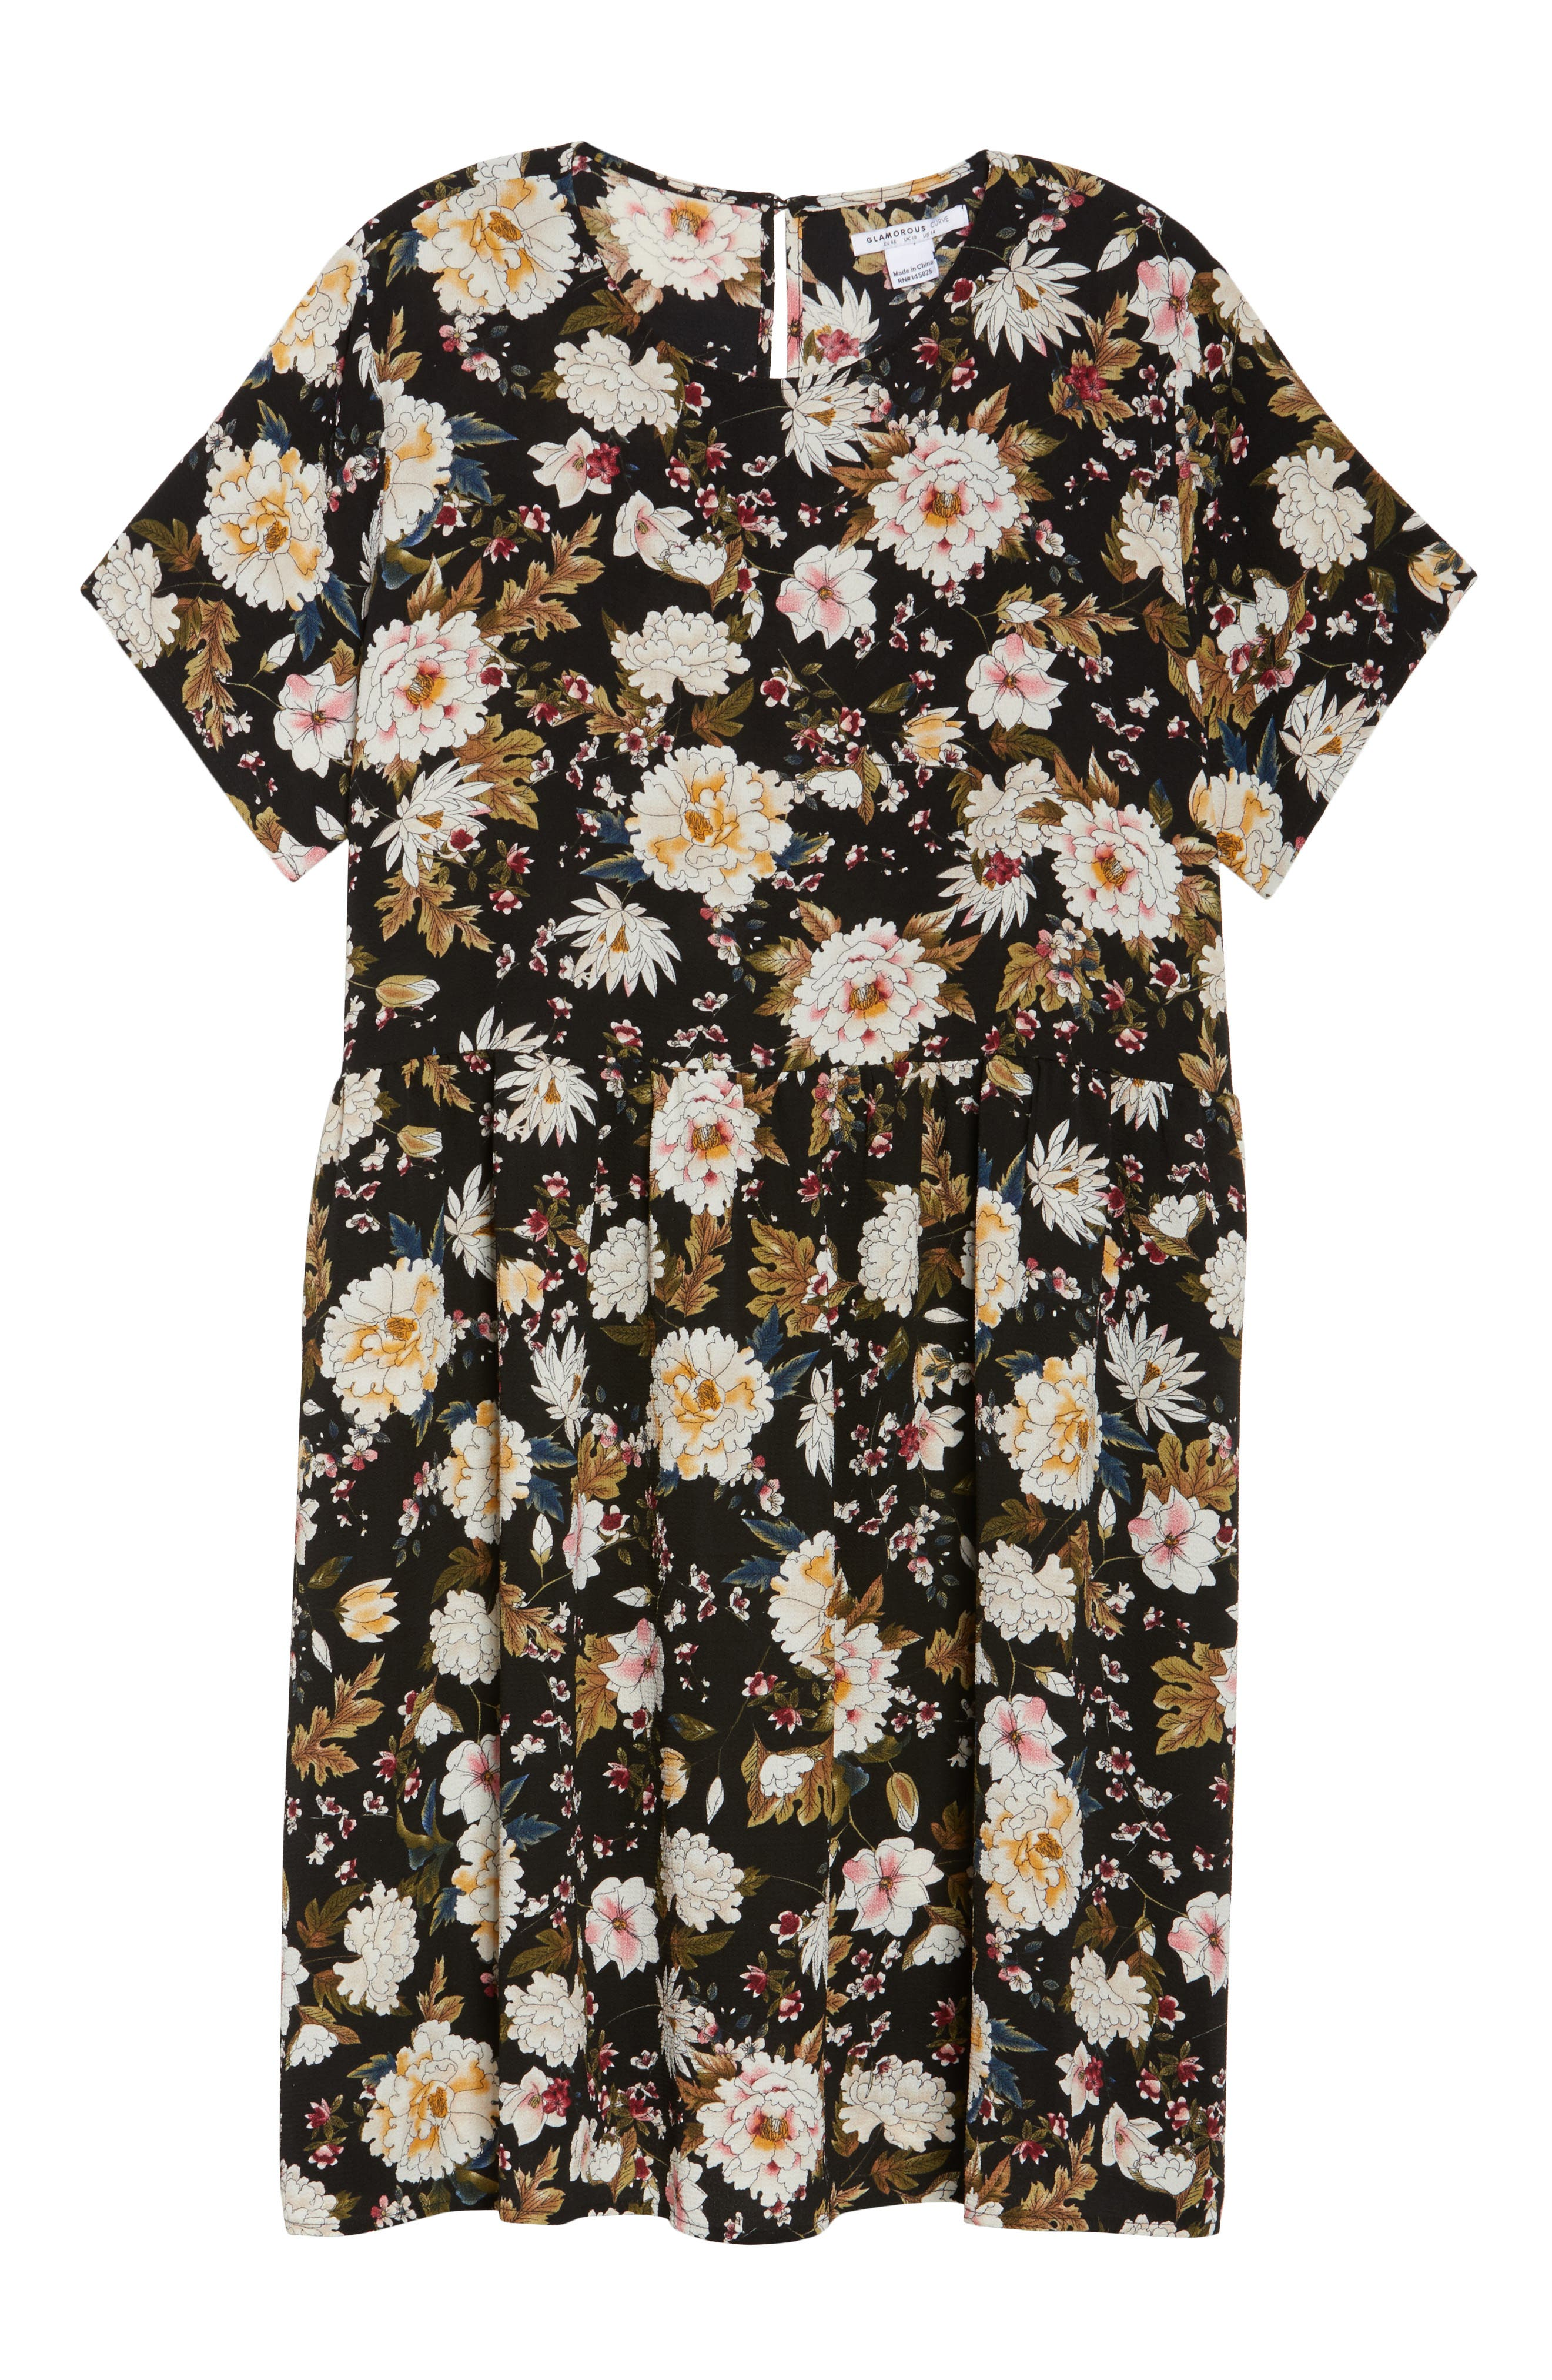 Empire Waist Floral Print Dress,                             Alternate thumbnail 6, color,                             009